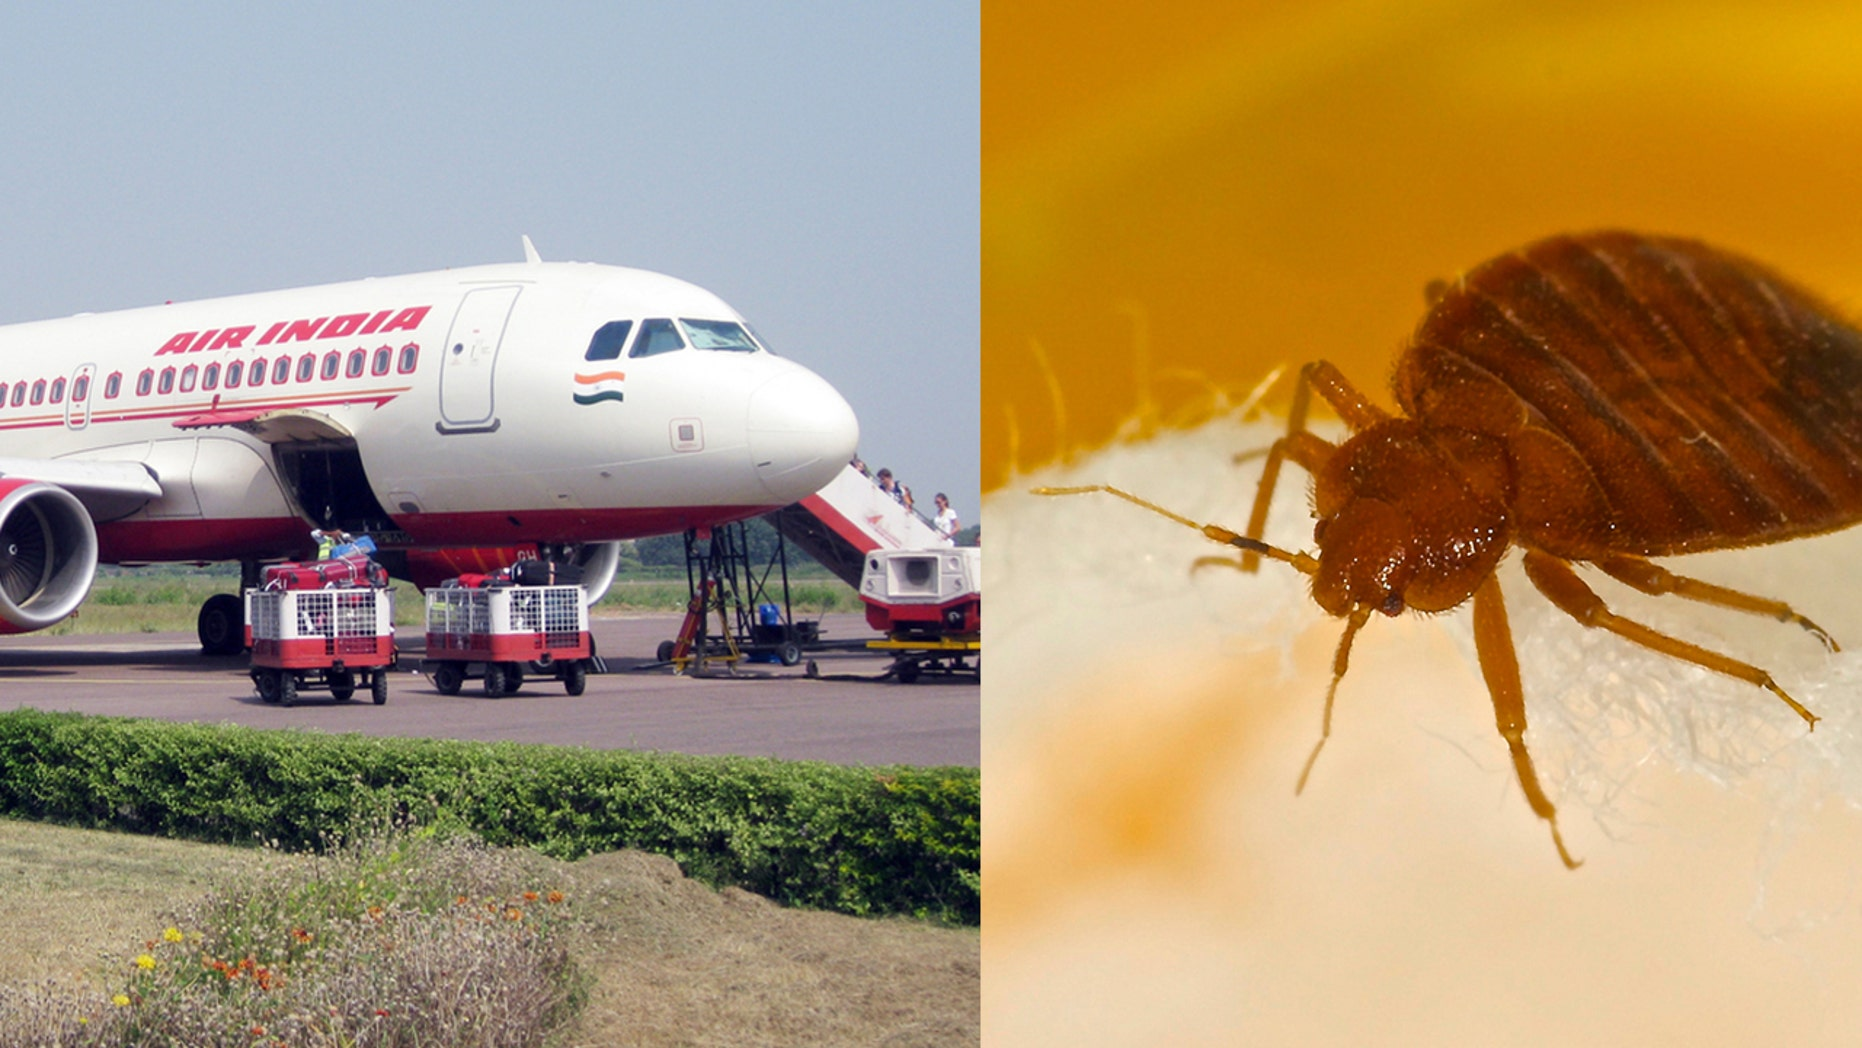 Multiple passengers from the past week have complained about being bitten by bed bugs on Air India flights.